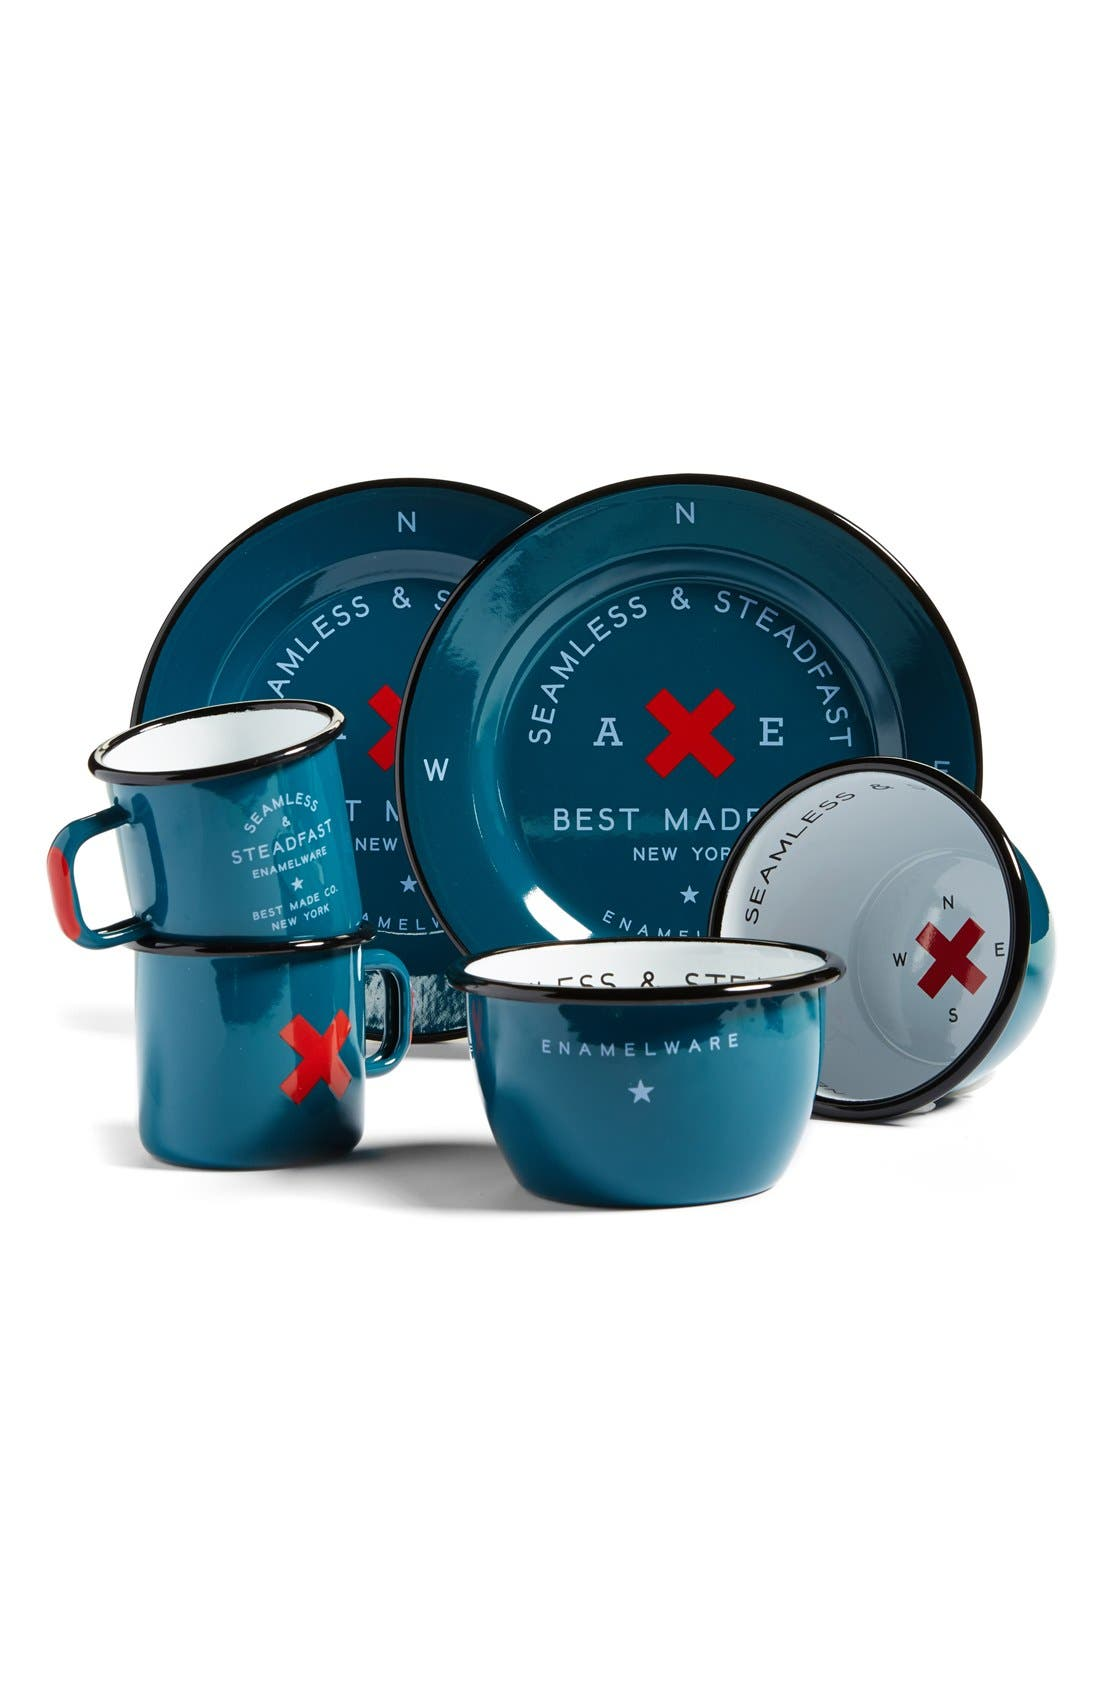 BEST MADE CO.,                             Best Made Co 'Seamless & Steadfast' Enamelware Cups, Bowls & Plates,                             Main thumbnail 1, color,                             400